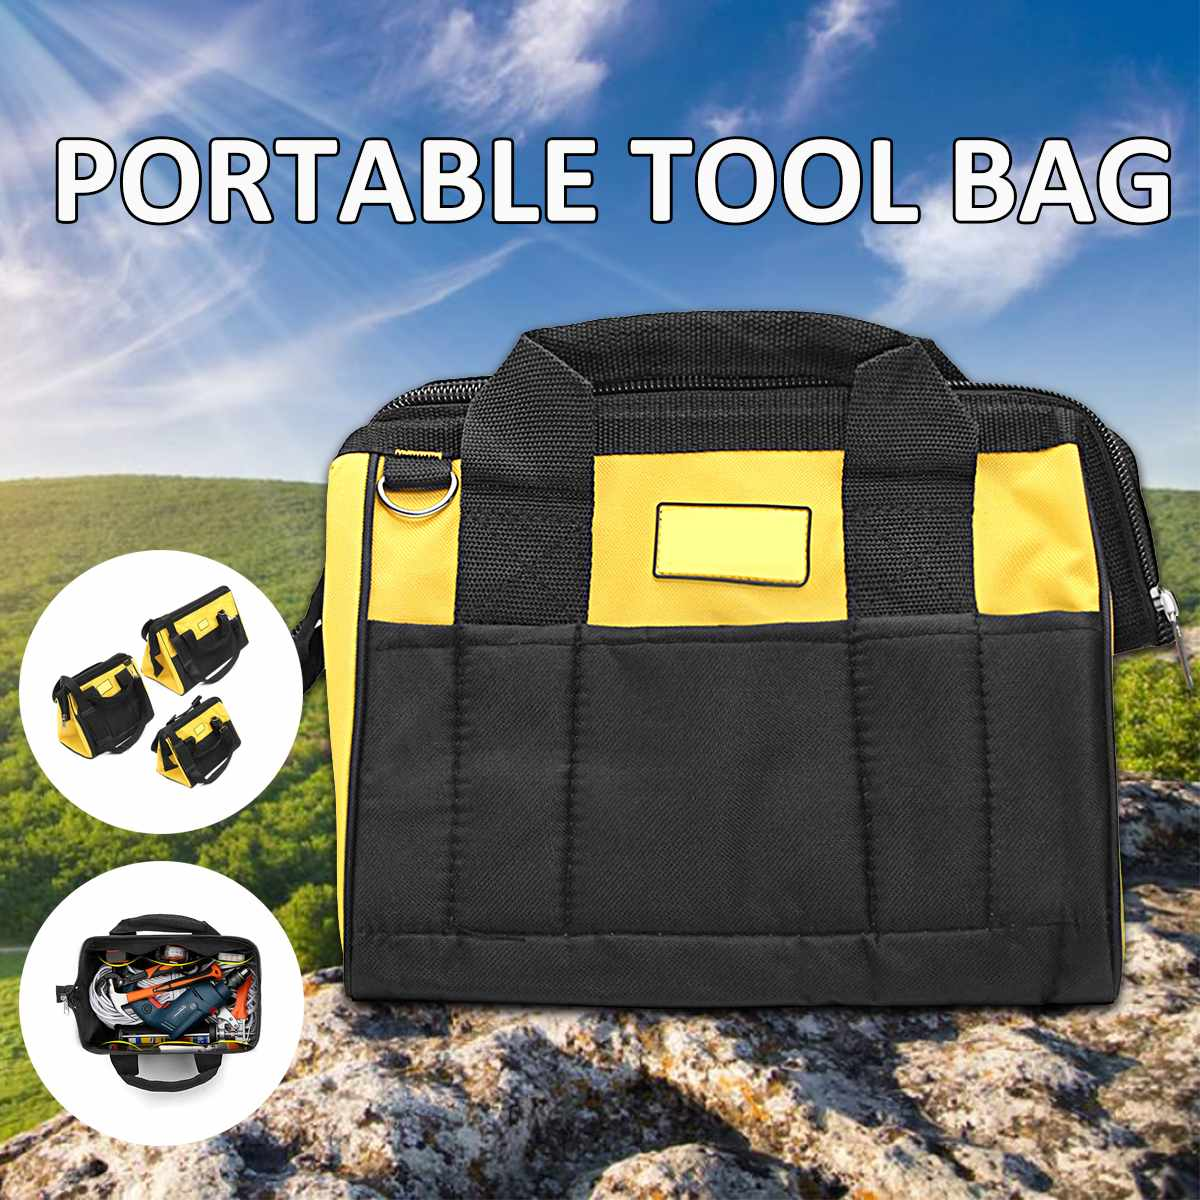 Canvas Nylon Tool Bag Storage Multitool Large Capacity For Tools Hardware Adjustable Shoulder Travel Bags Hand Tool Kit Set Bags